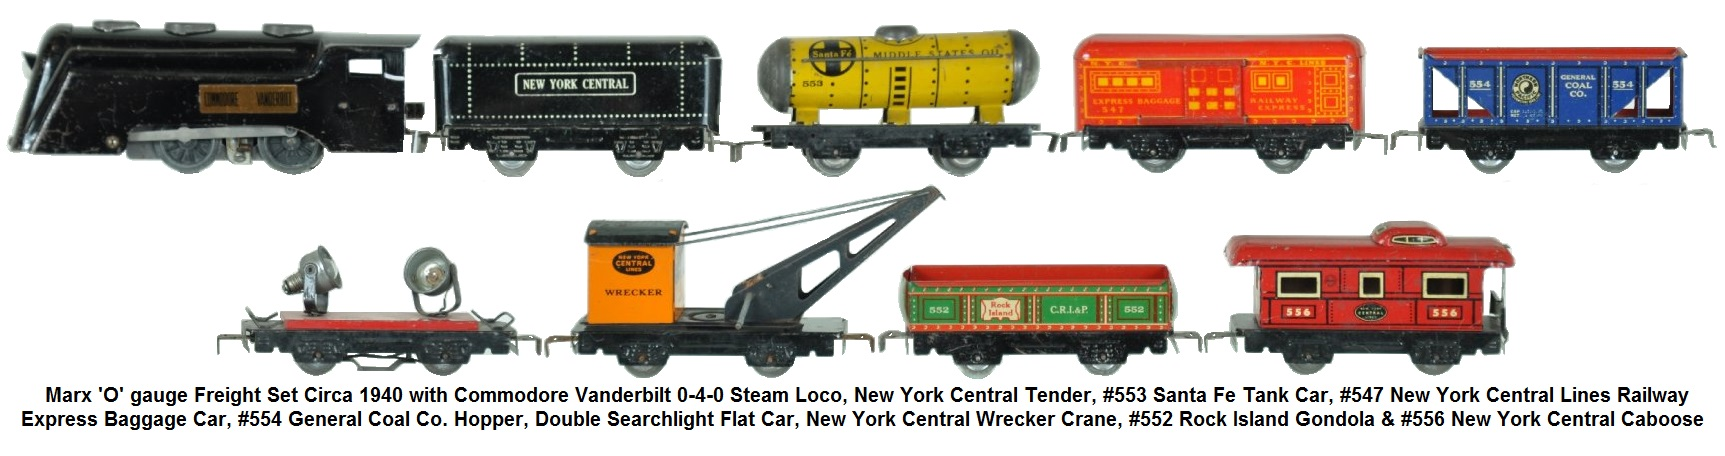 Marx 'O' gauge tinplate early steam freight set Circa 1940. Commodore Vanderbilt steam loco NYC tender; SF tank car double searchlight; hopper 547 baggage crane; gondola & caboose